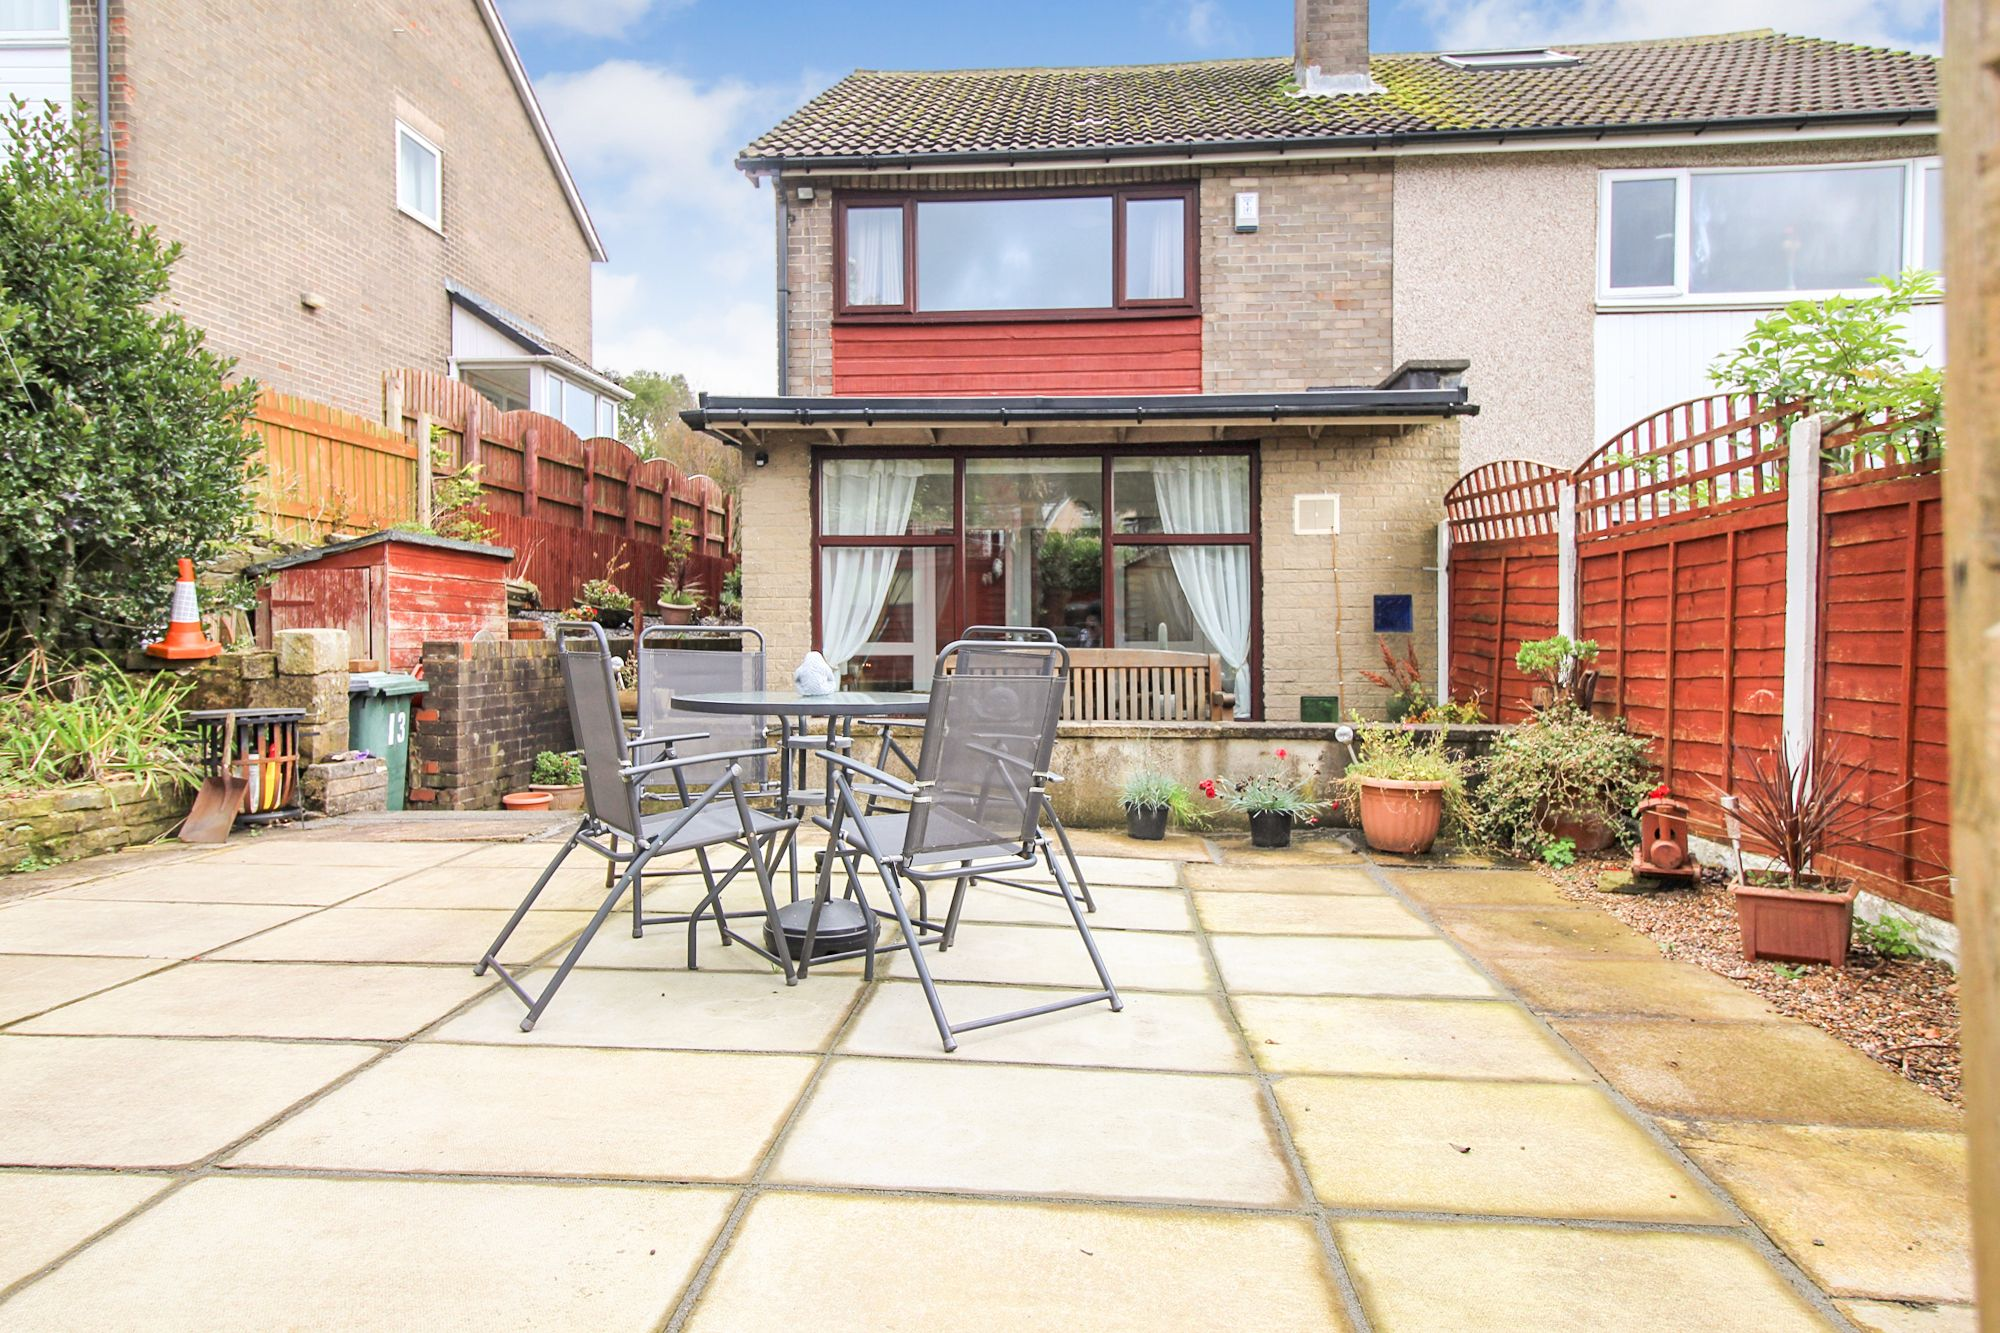 3 bedroom semi-detached house For Sale in Bradford - Rear Patio